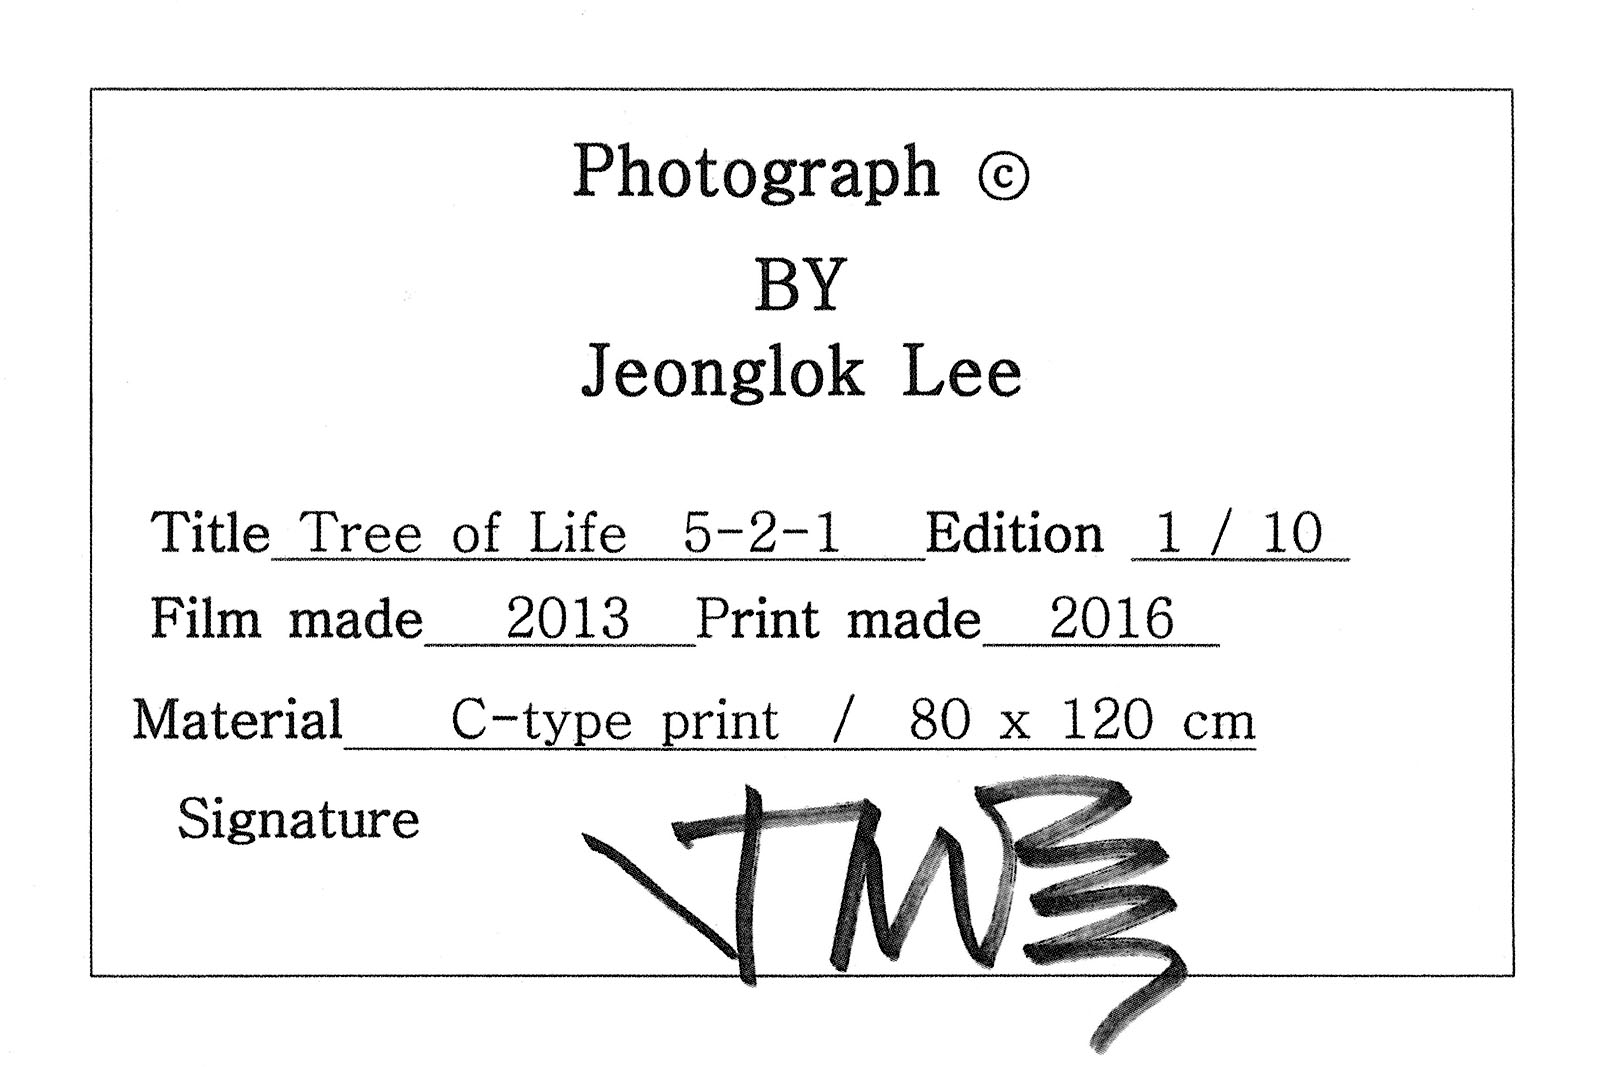 Tree of Life 5-2-1 - Lee Jeonglok